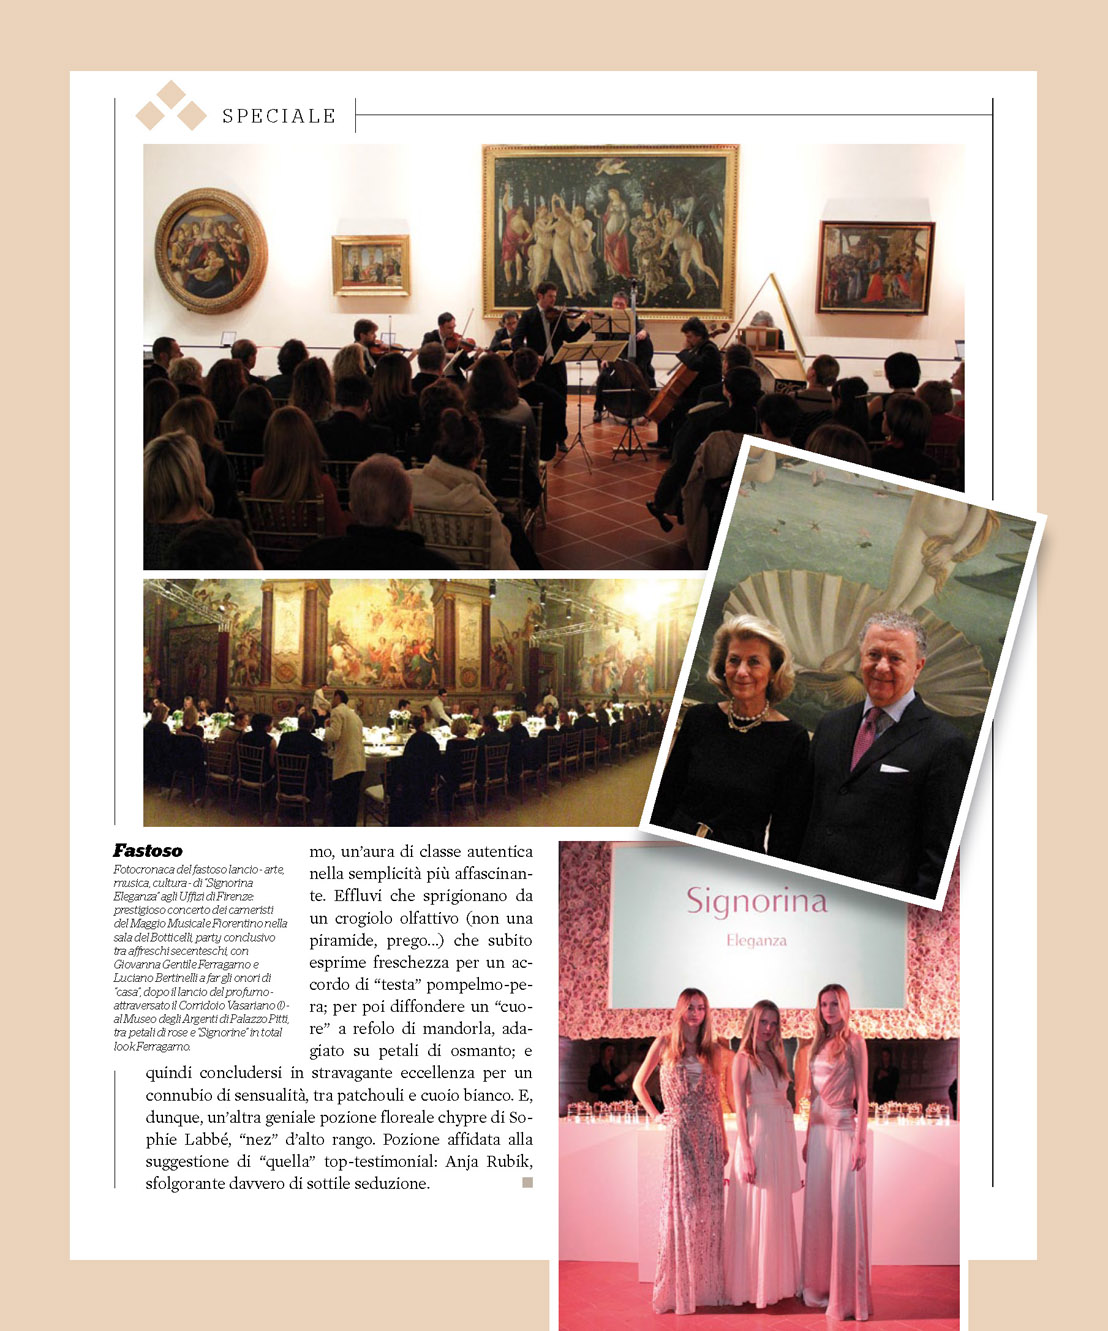 Italia_DAILY_LUXURY_01.02.14_p68